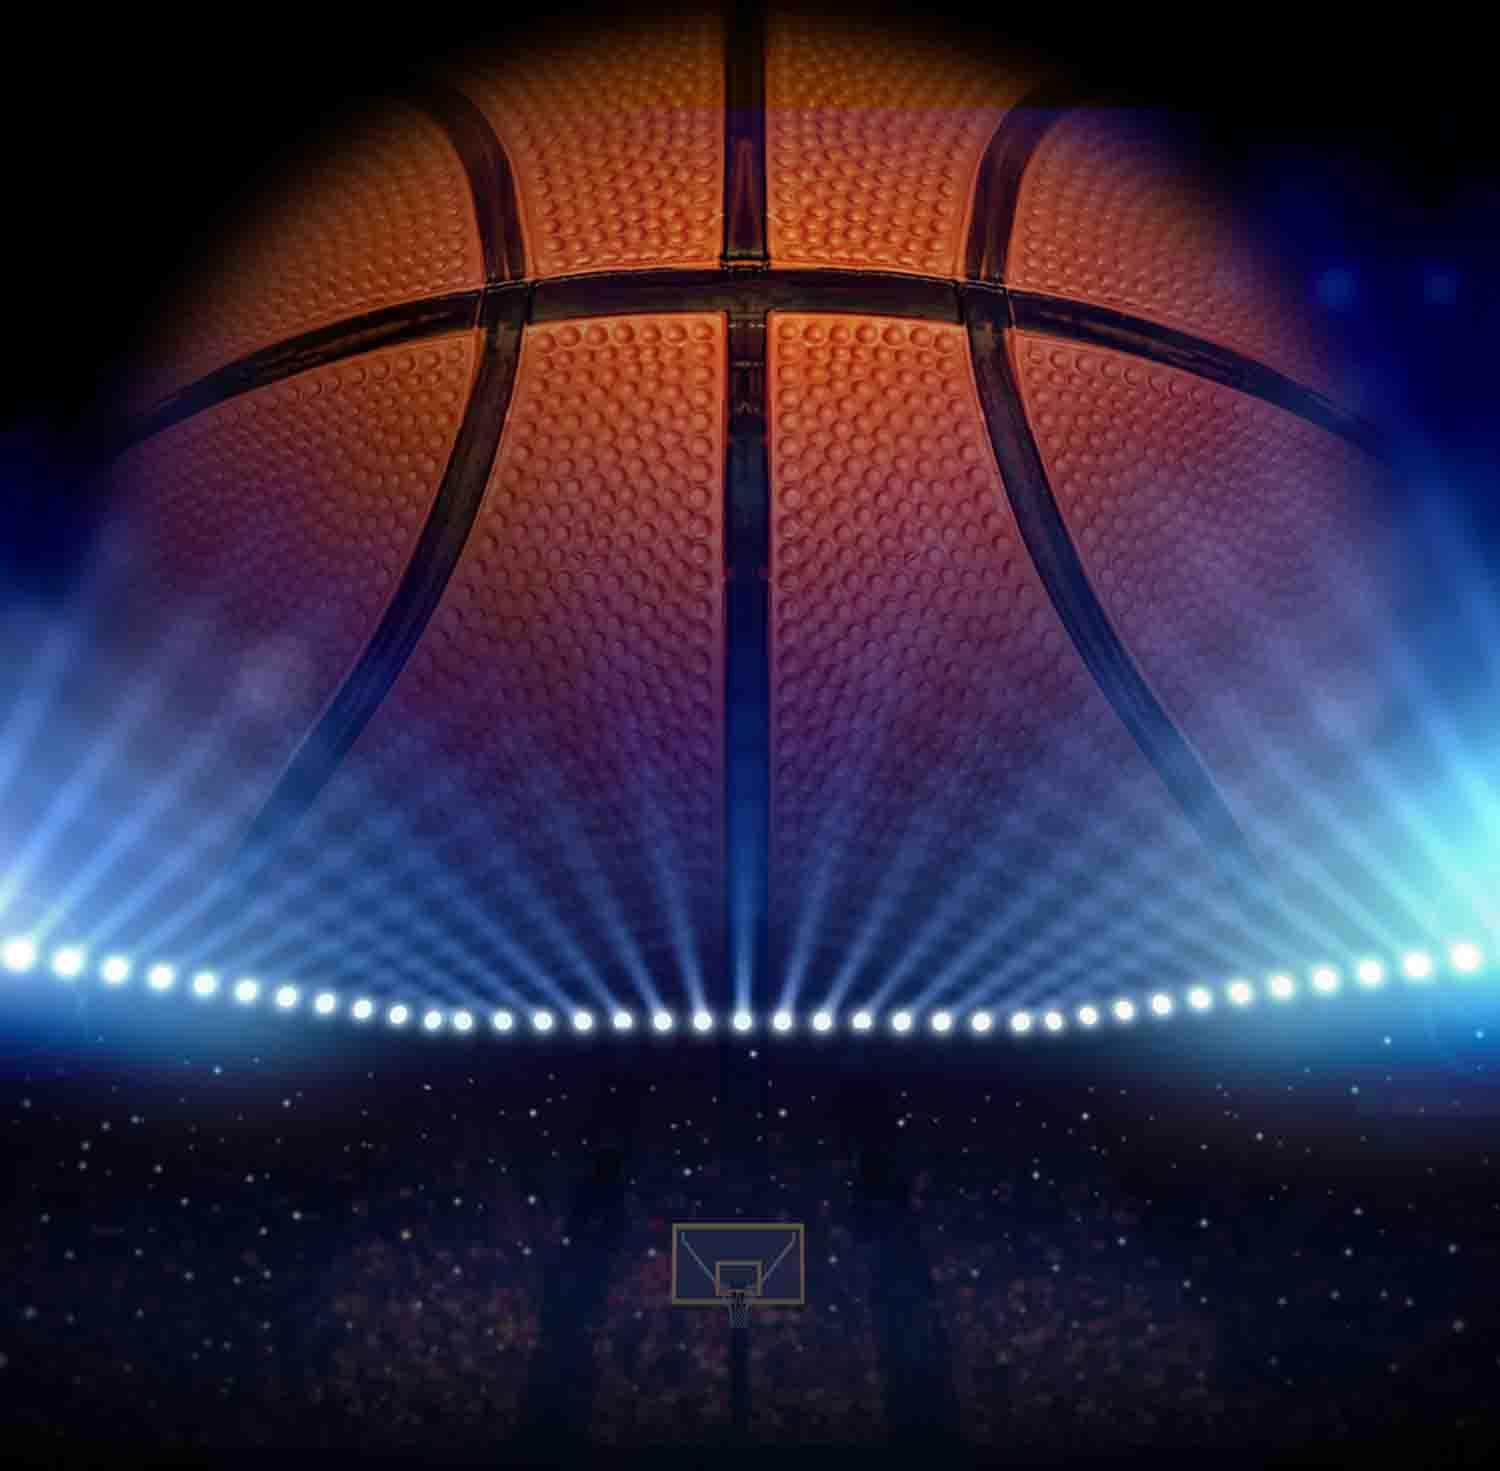 Basketball Wallpaper for Android - APK Download